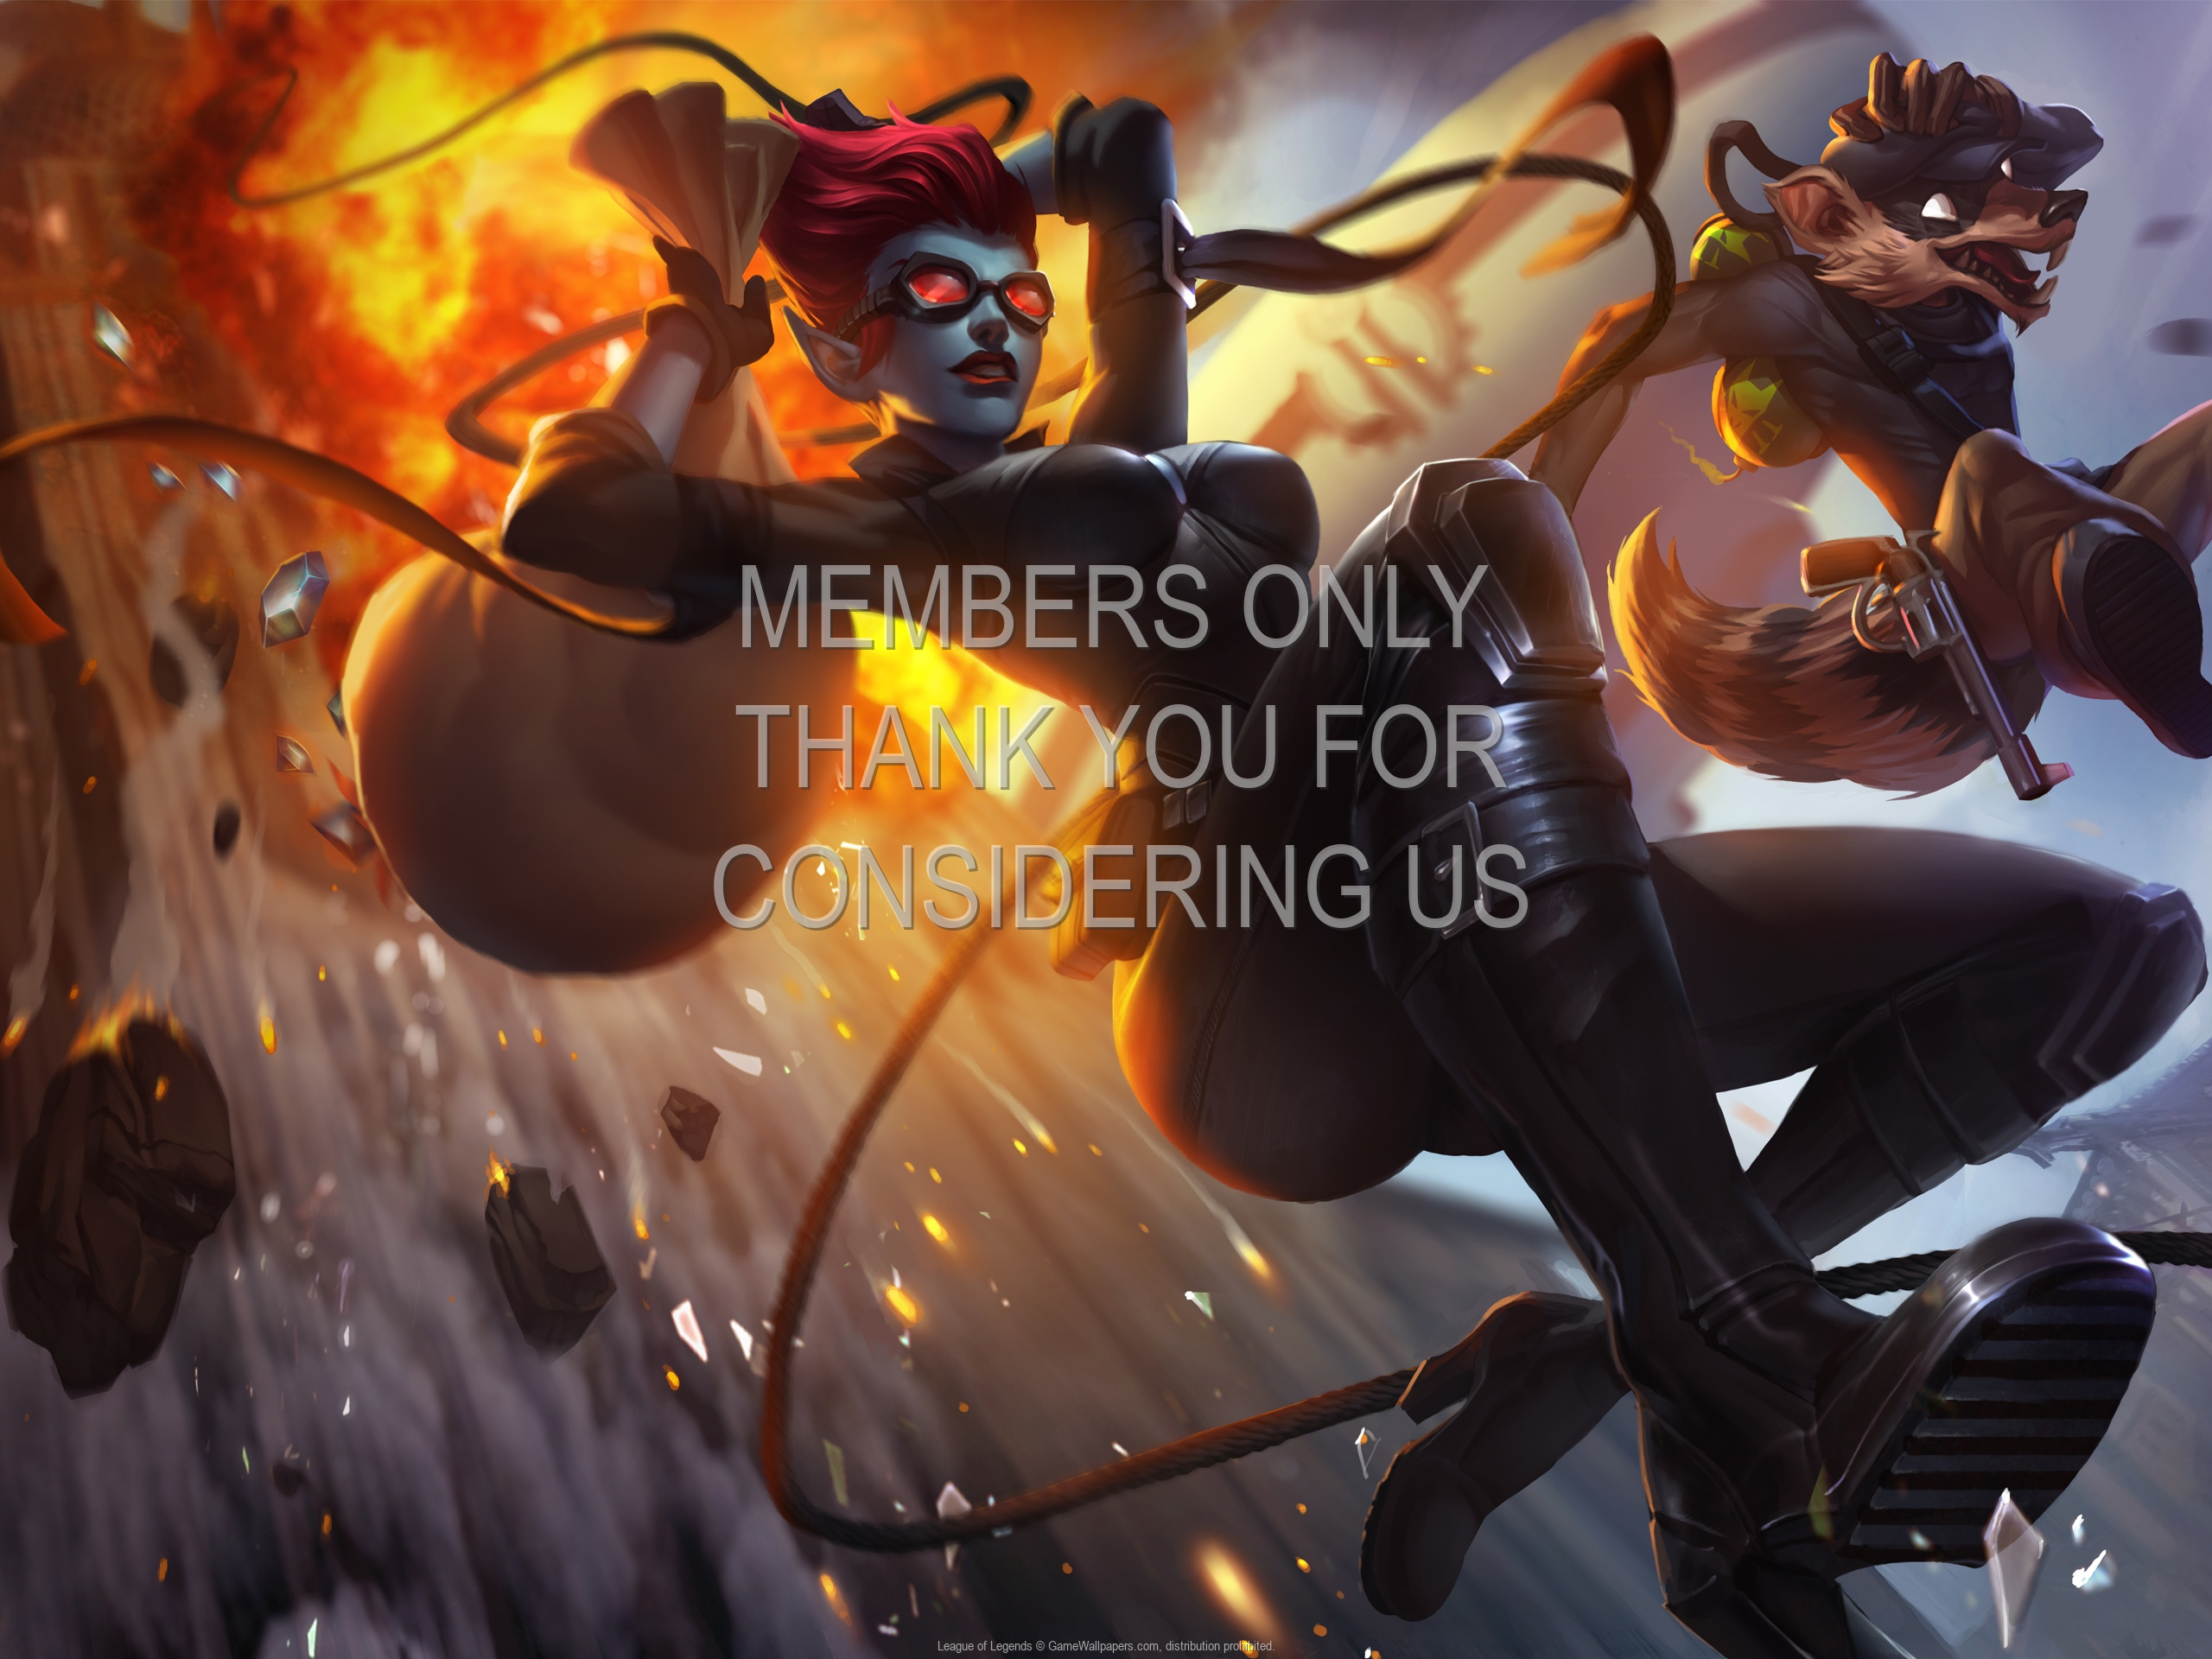 League of Legends 1920x1080 Mobile wallpaper or background 36